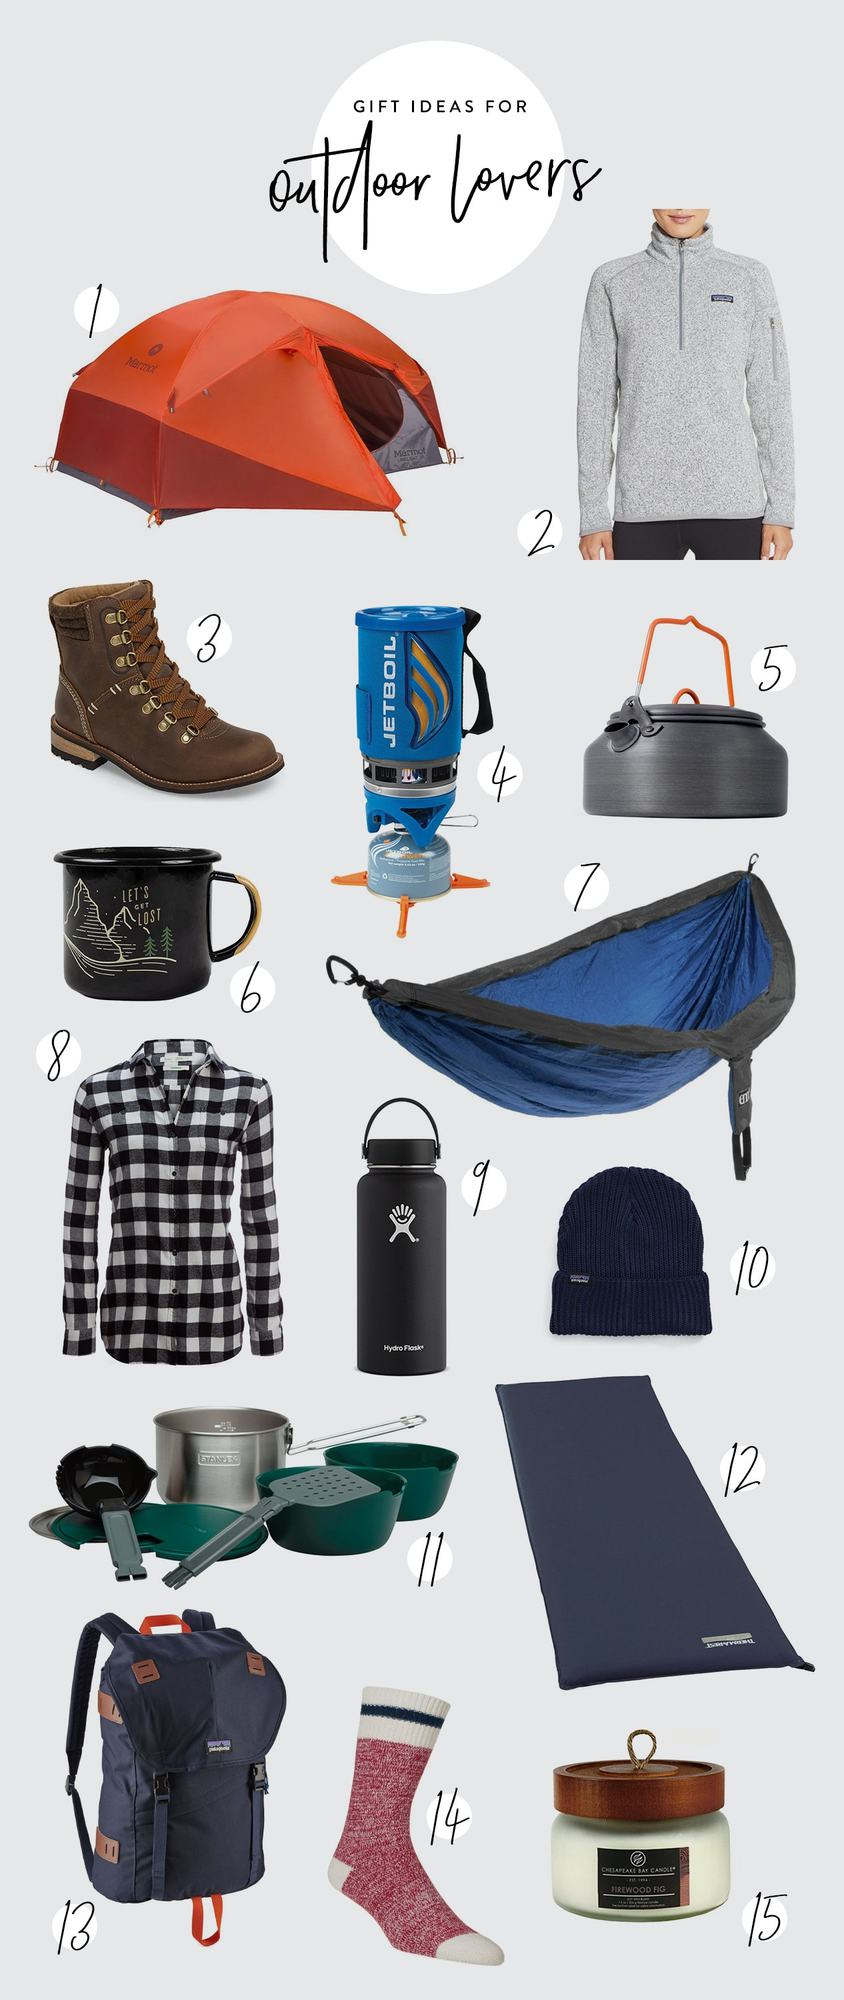 Gift Ideas for Outdoor Lovers: Get your favorite outdoor-lovin' lady outside this season by giving her one of our favorite gifts for outdoor lovers. We've collected the essentials to make sure she is prepared to enjoy mother nature with ease!